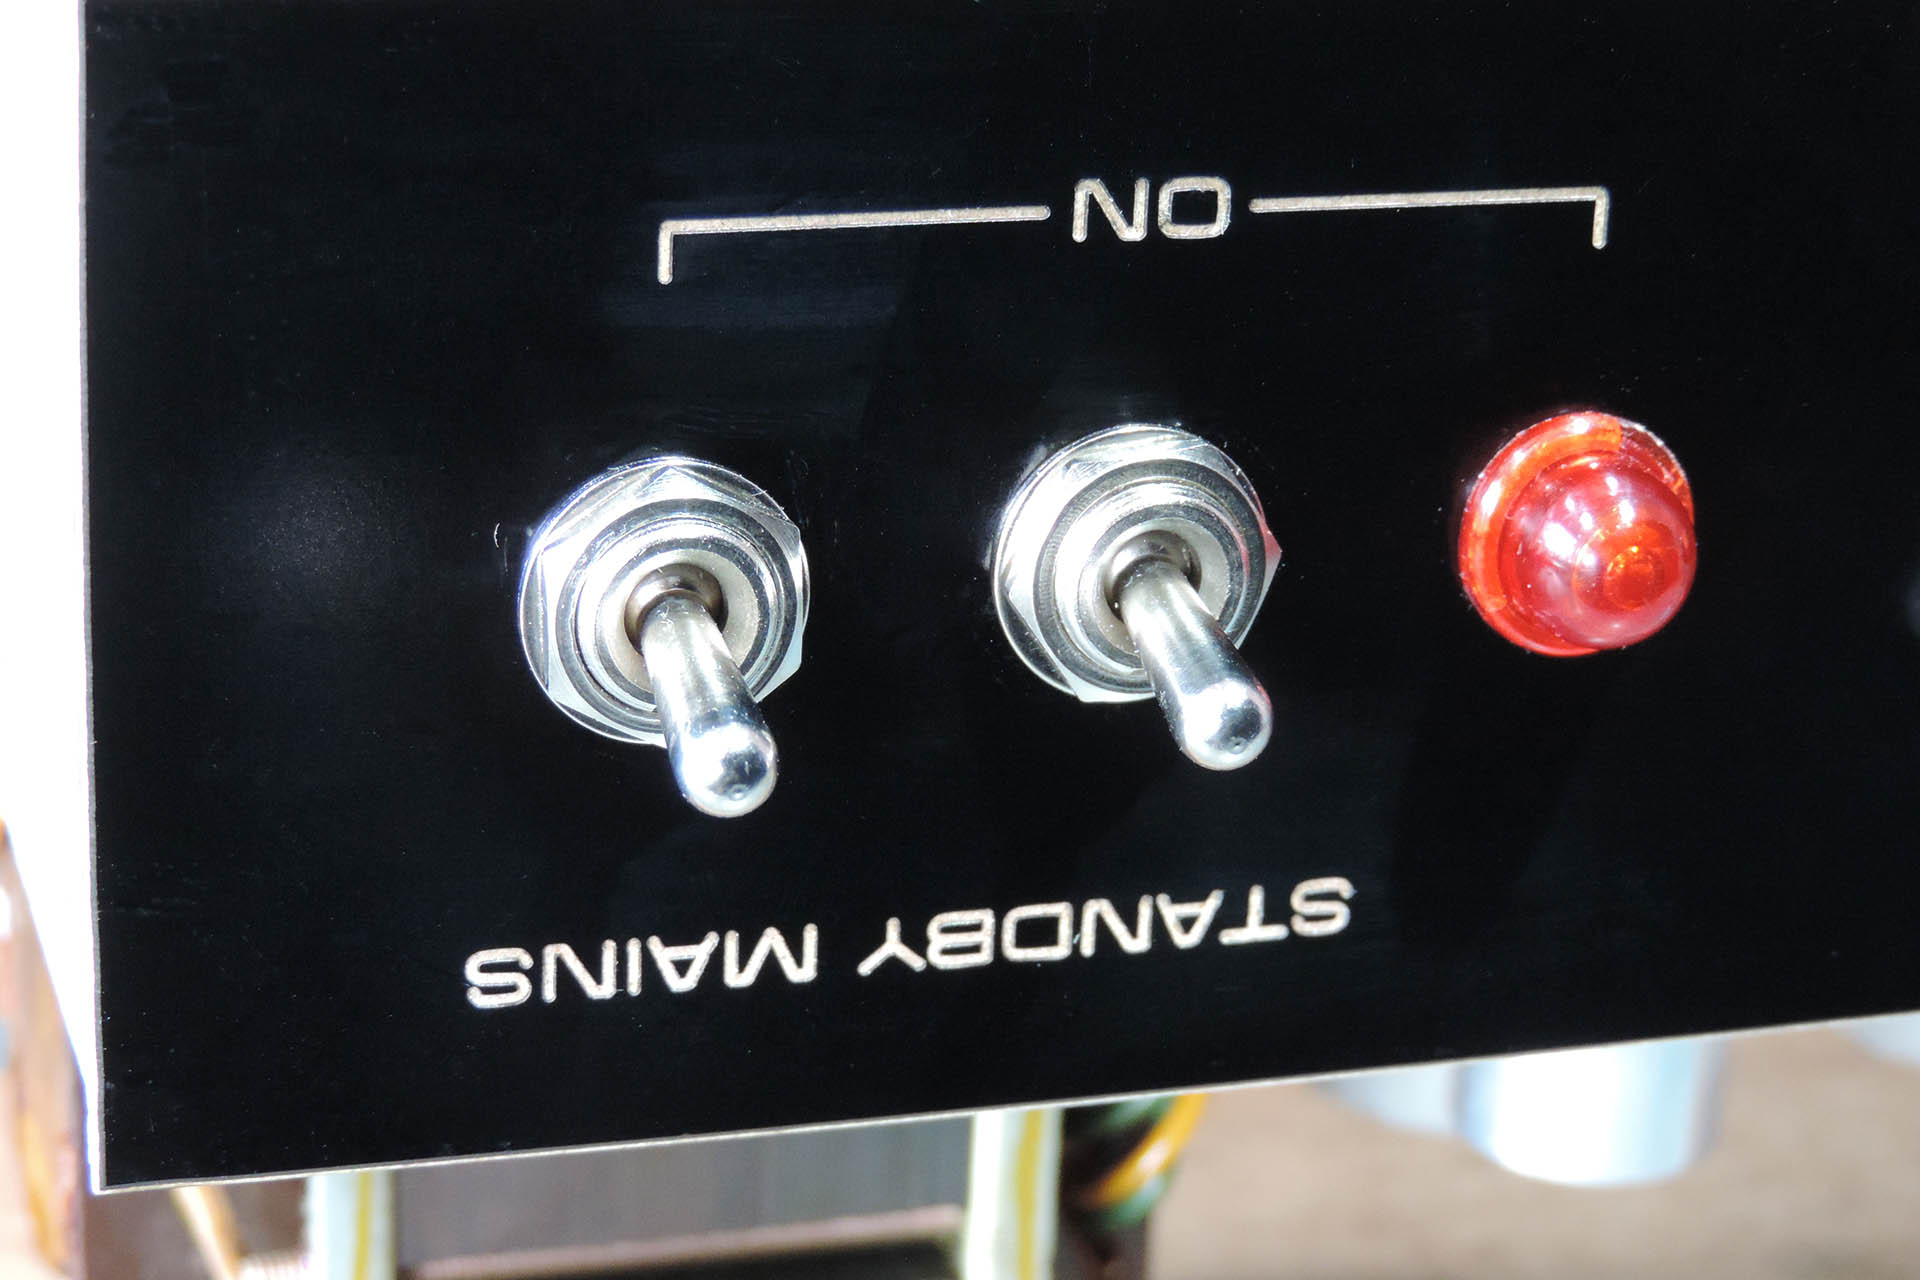 New switches on Hiwatt DR-103